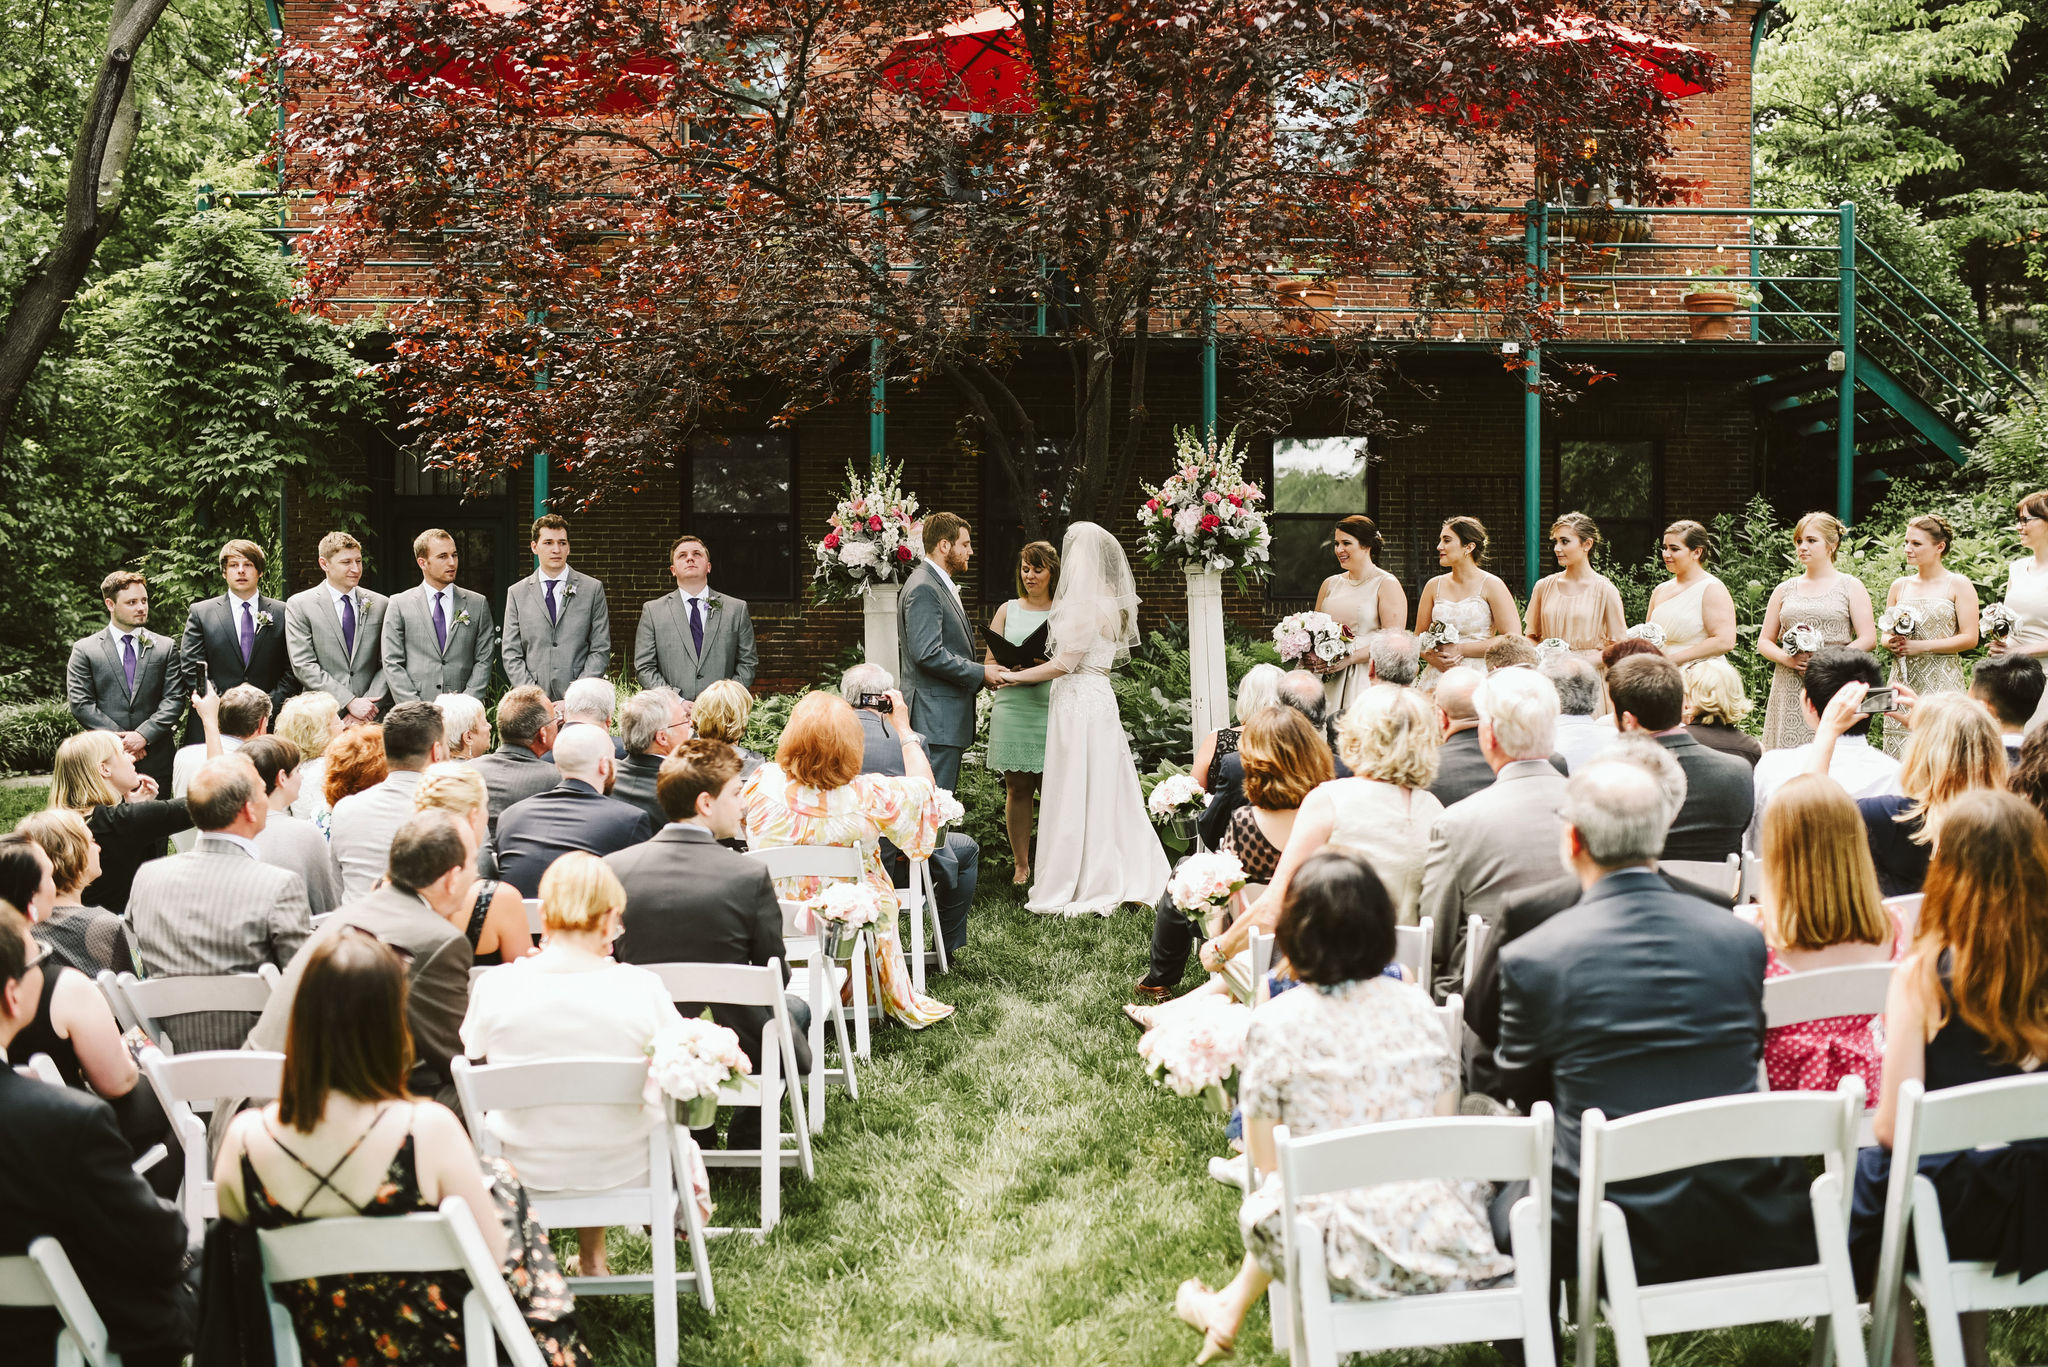 Hampden, Baltimore, Maryland Wedding Photographer, Garden Wedding, Classic, DIY, Romantic, Bride and Groom Exchanging Vows in Front of Wedding Guests, Sunny Day